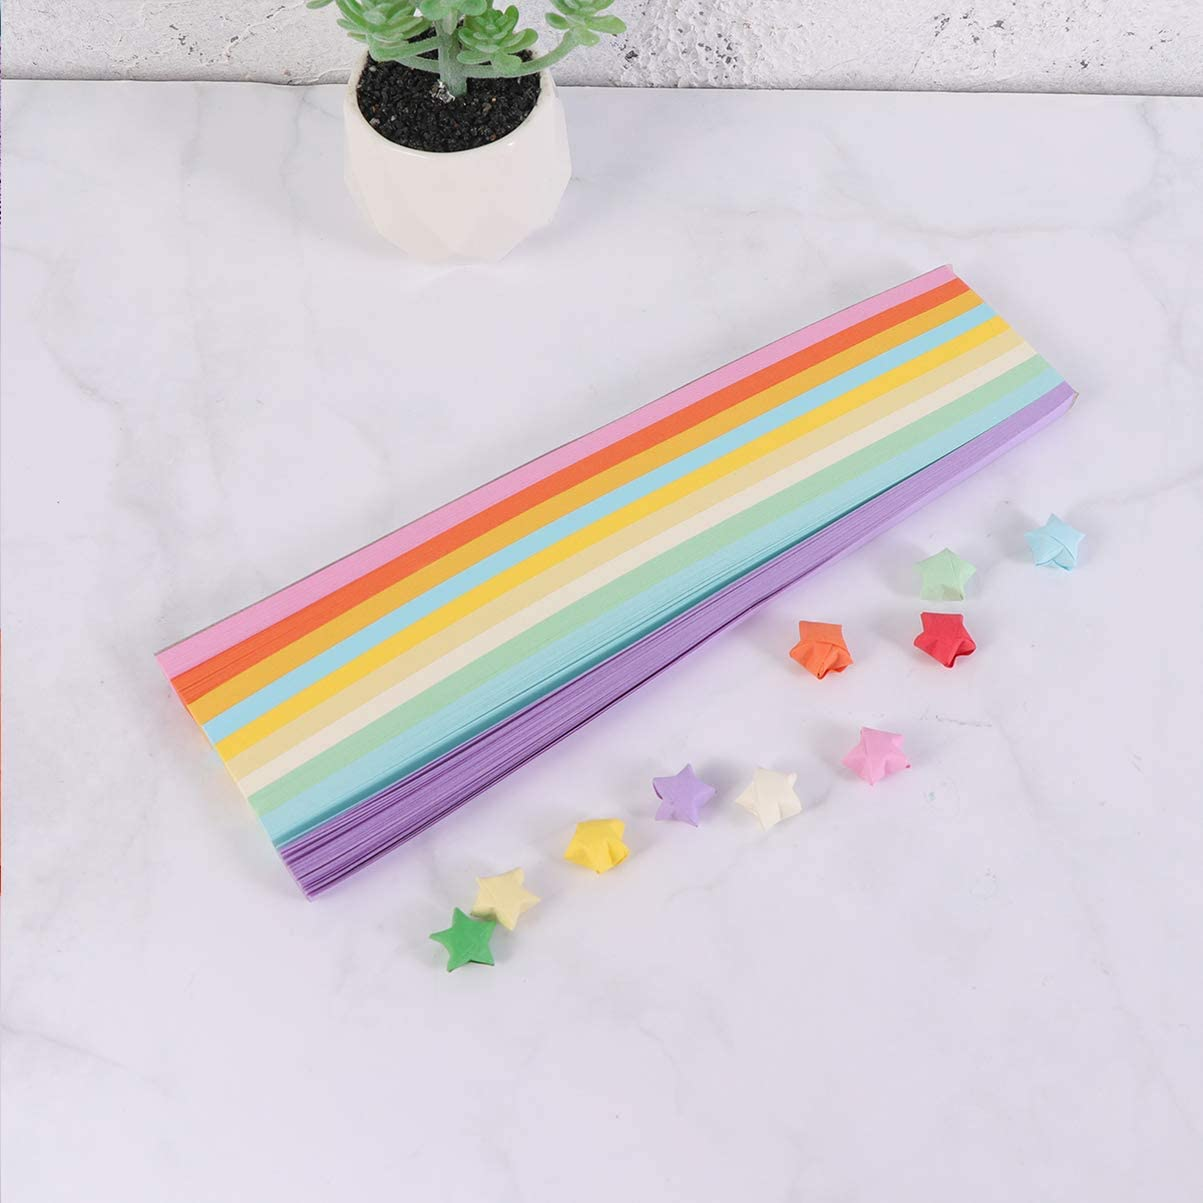 STOBOK 540Pcs Origami Stars Papers Handcraft Lucky Star Paper Strips Colorful Paper Craft for Children Kids Party Decoration Light Color